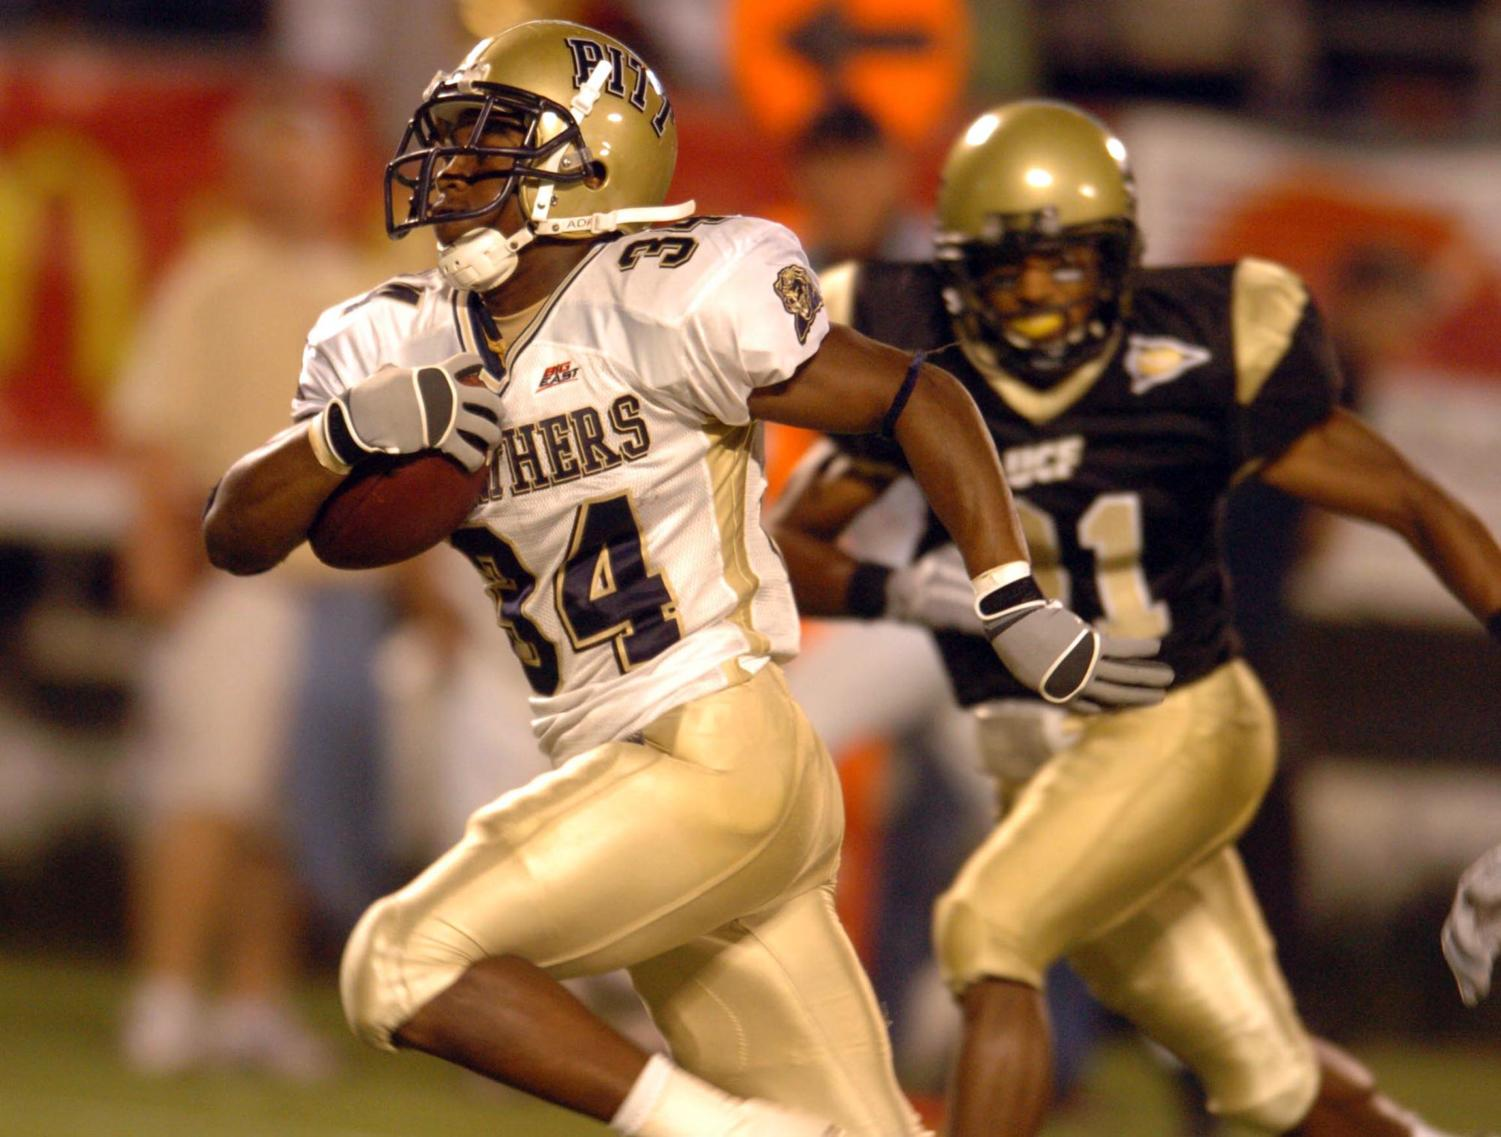 Pitt running back LaRod Stephens-Howling runs for a touchdown against the University of Central Florida during the teams' most recent match against each other at the Citrus Bowl in Orlando, FL on Oct. 13, 2006. (Stephen M. Dowell/Orlando Sentinel/MCT)